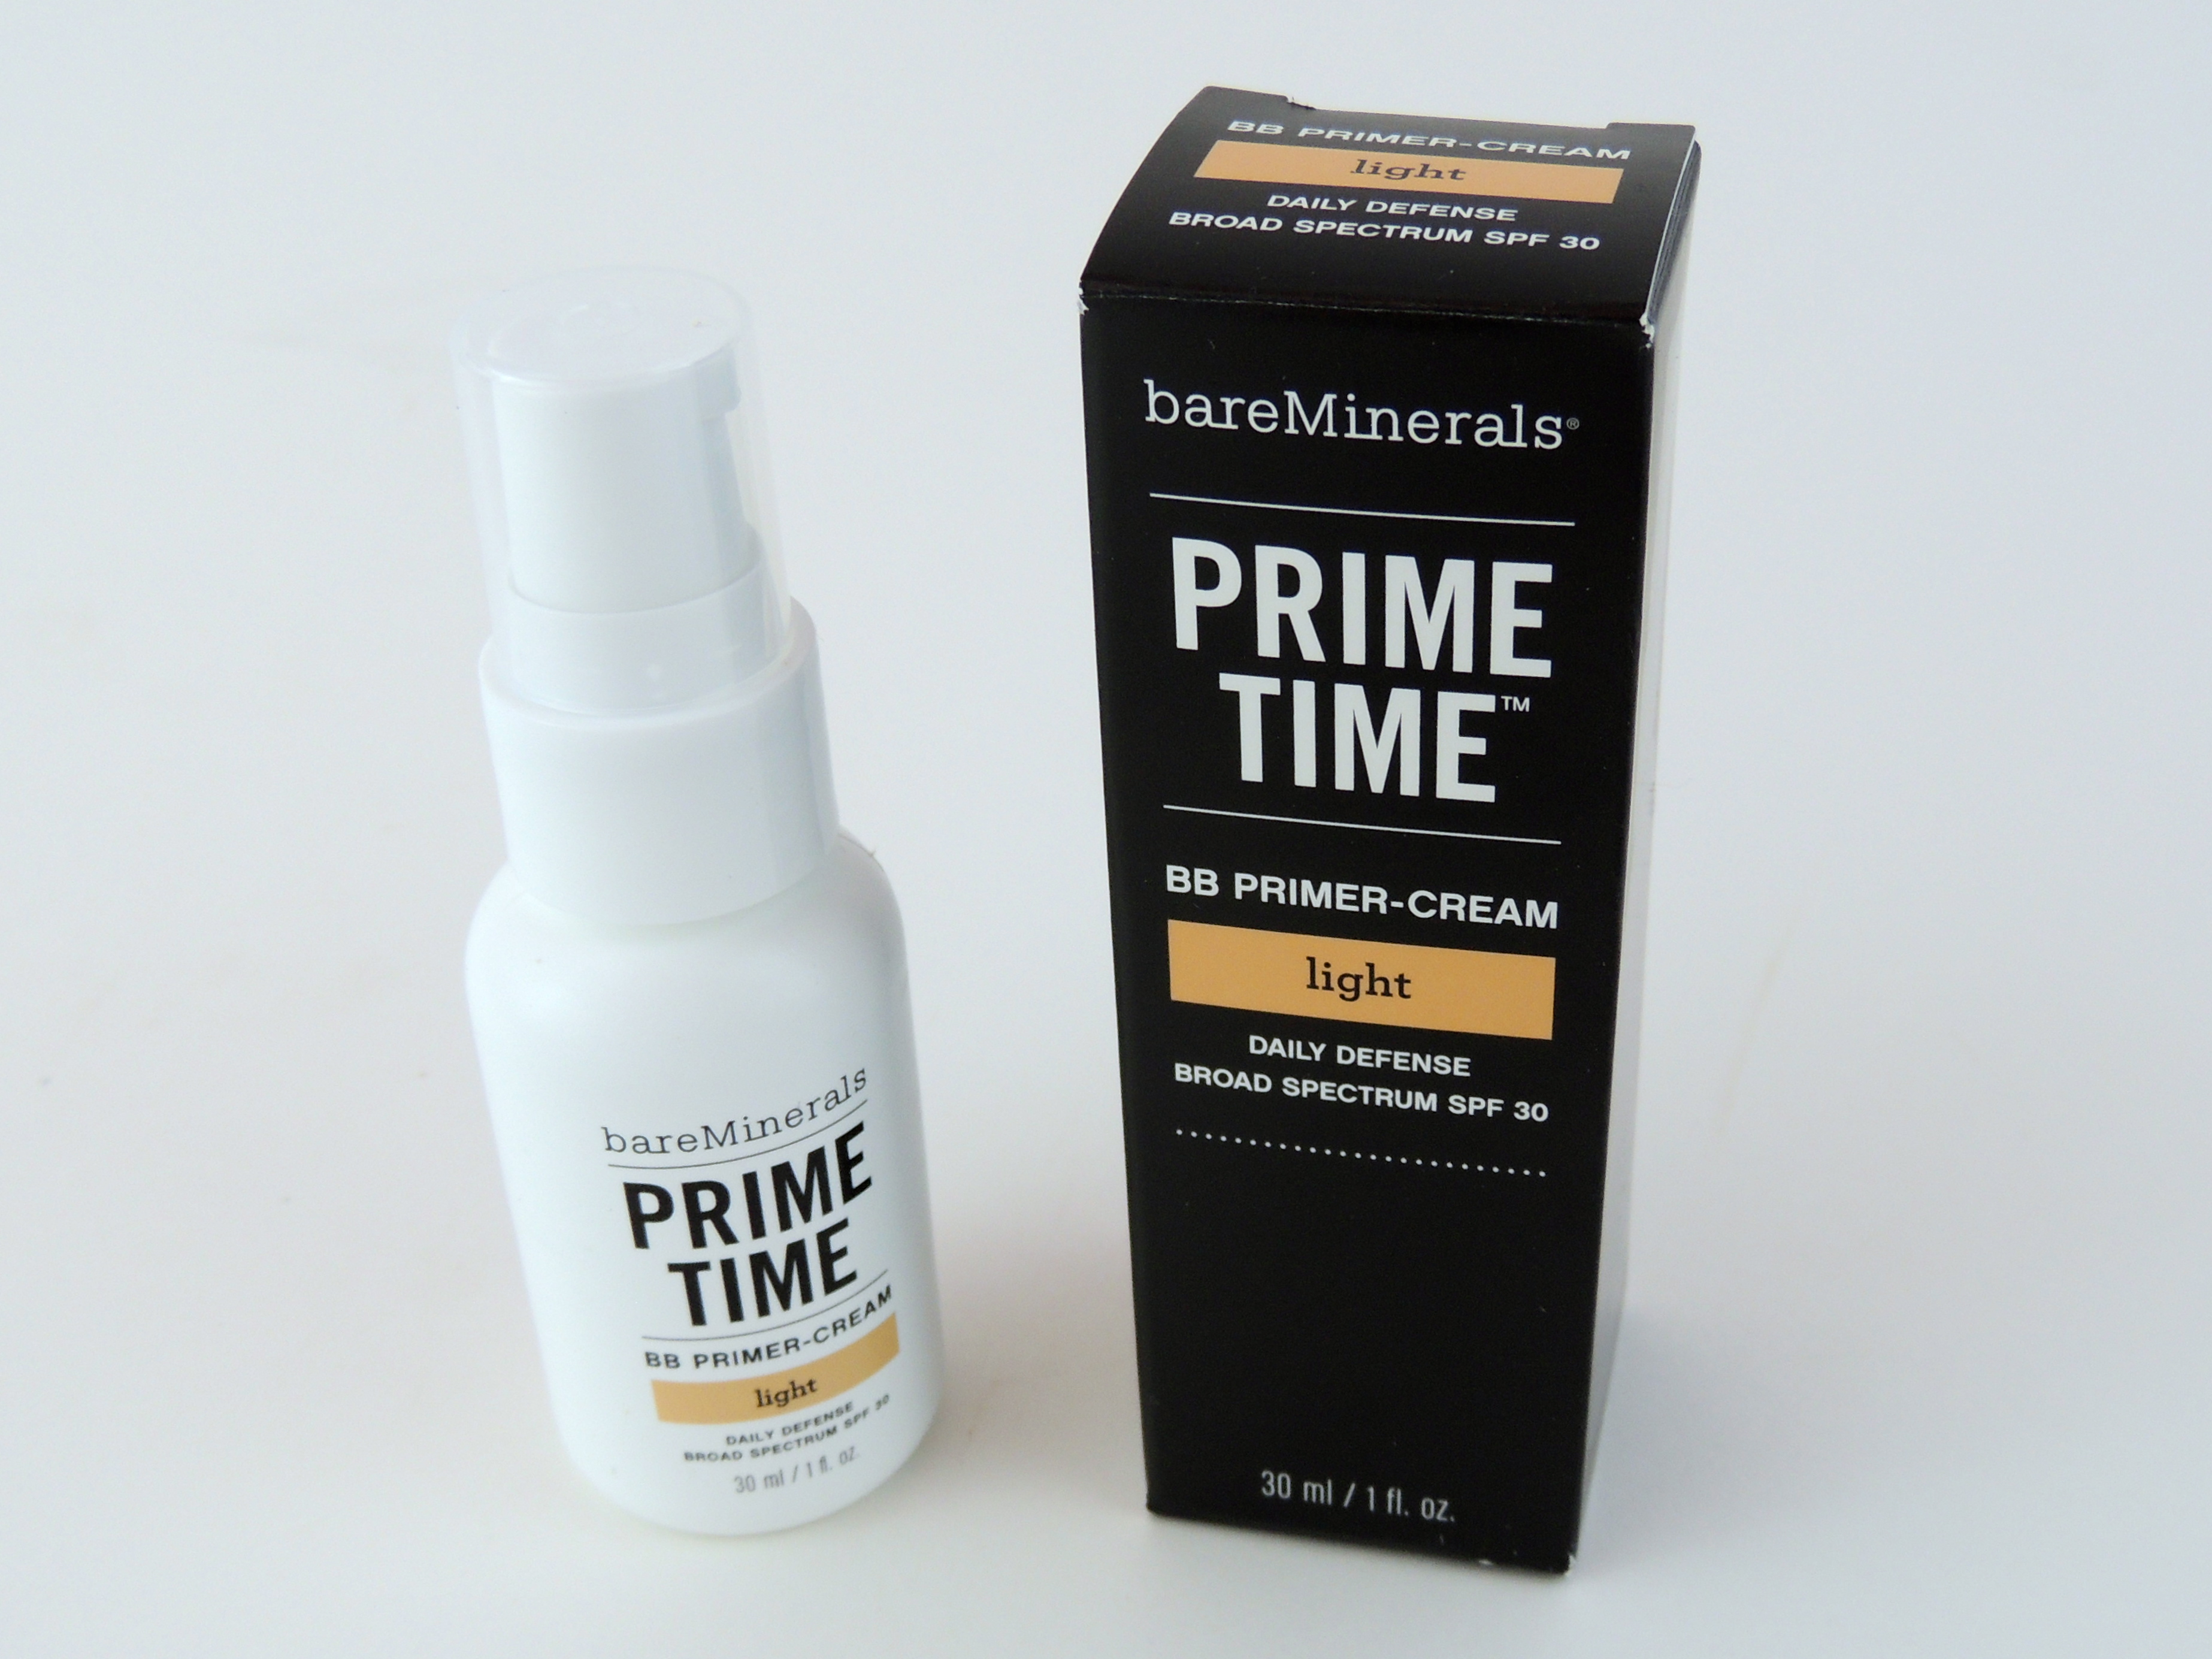 bareminerals prime time before and after. bareminerals prime time bareminerals before and after